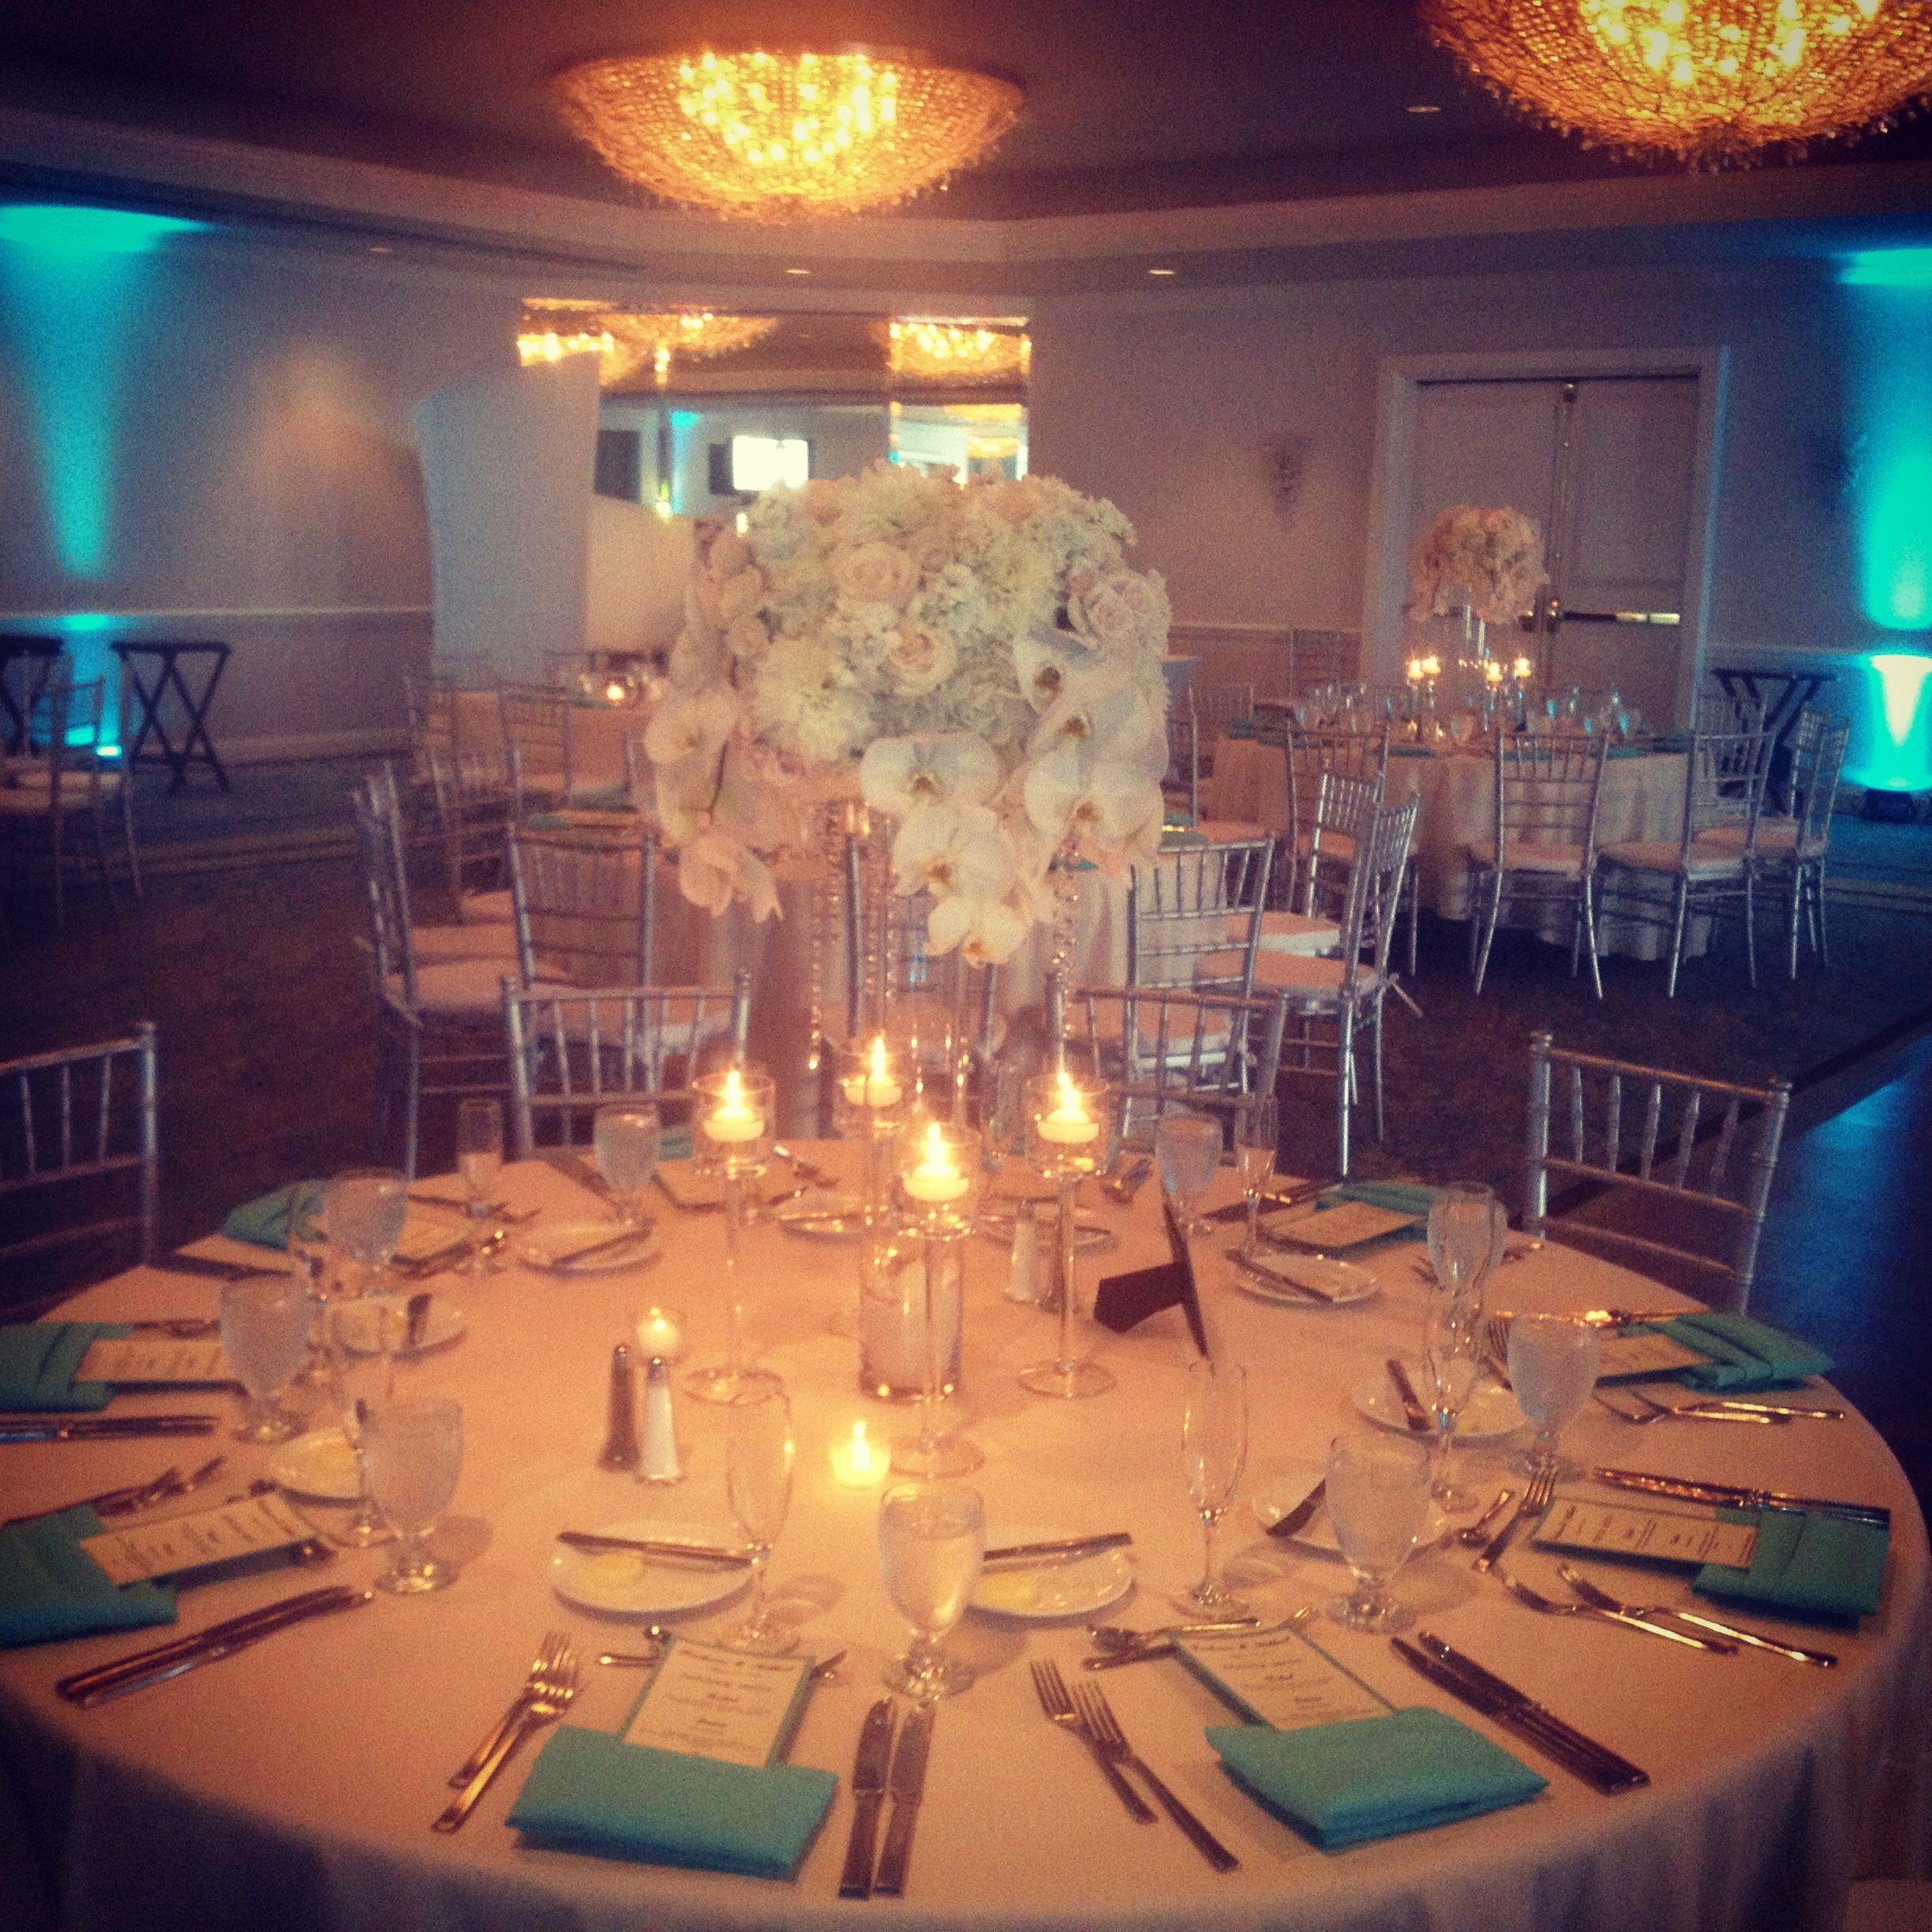 Teal Wedding Ideas For Reception: Teal And White Reception Decor #sdweddingsbygina